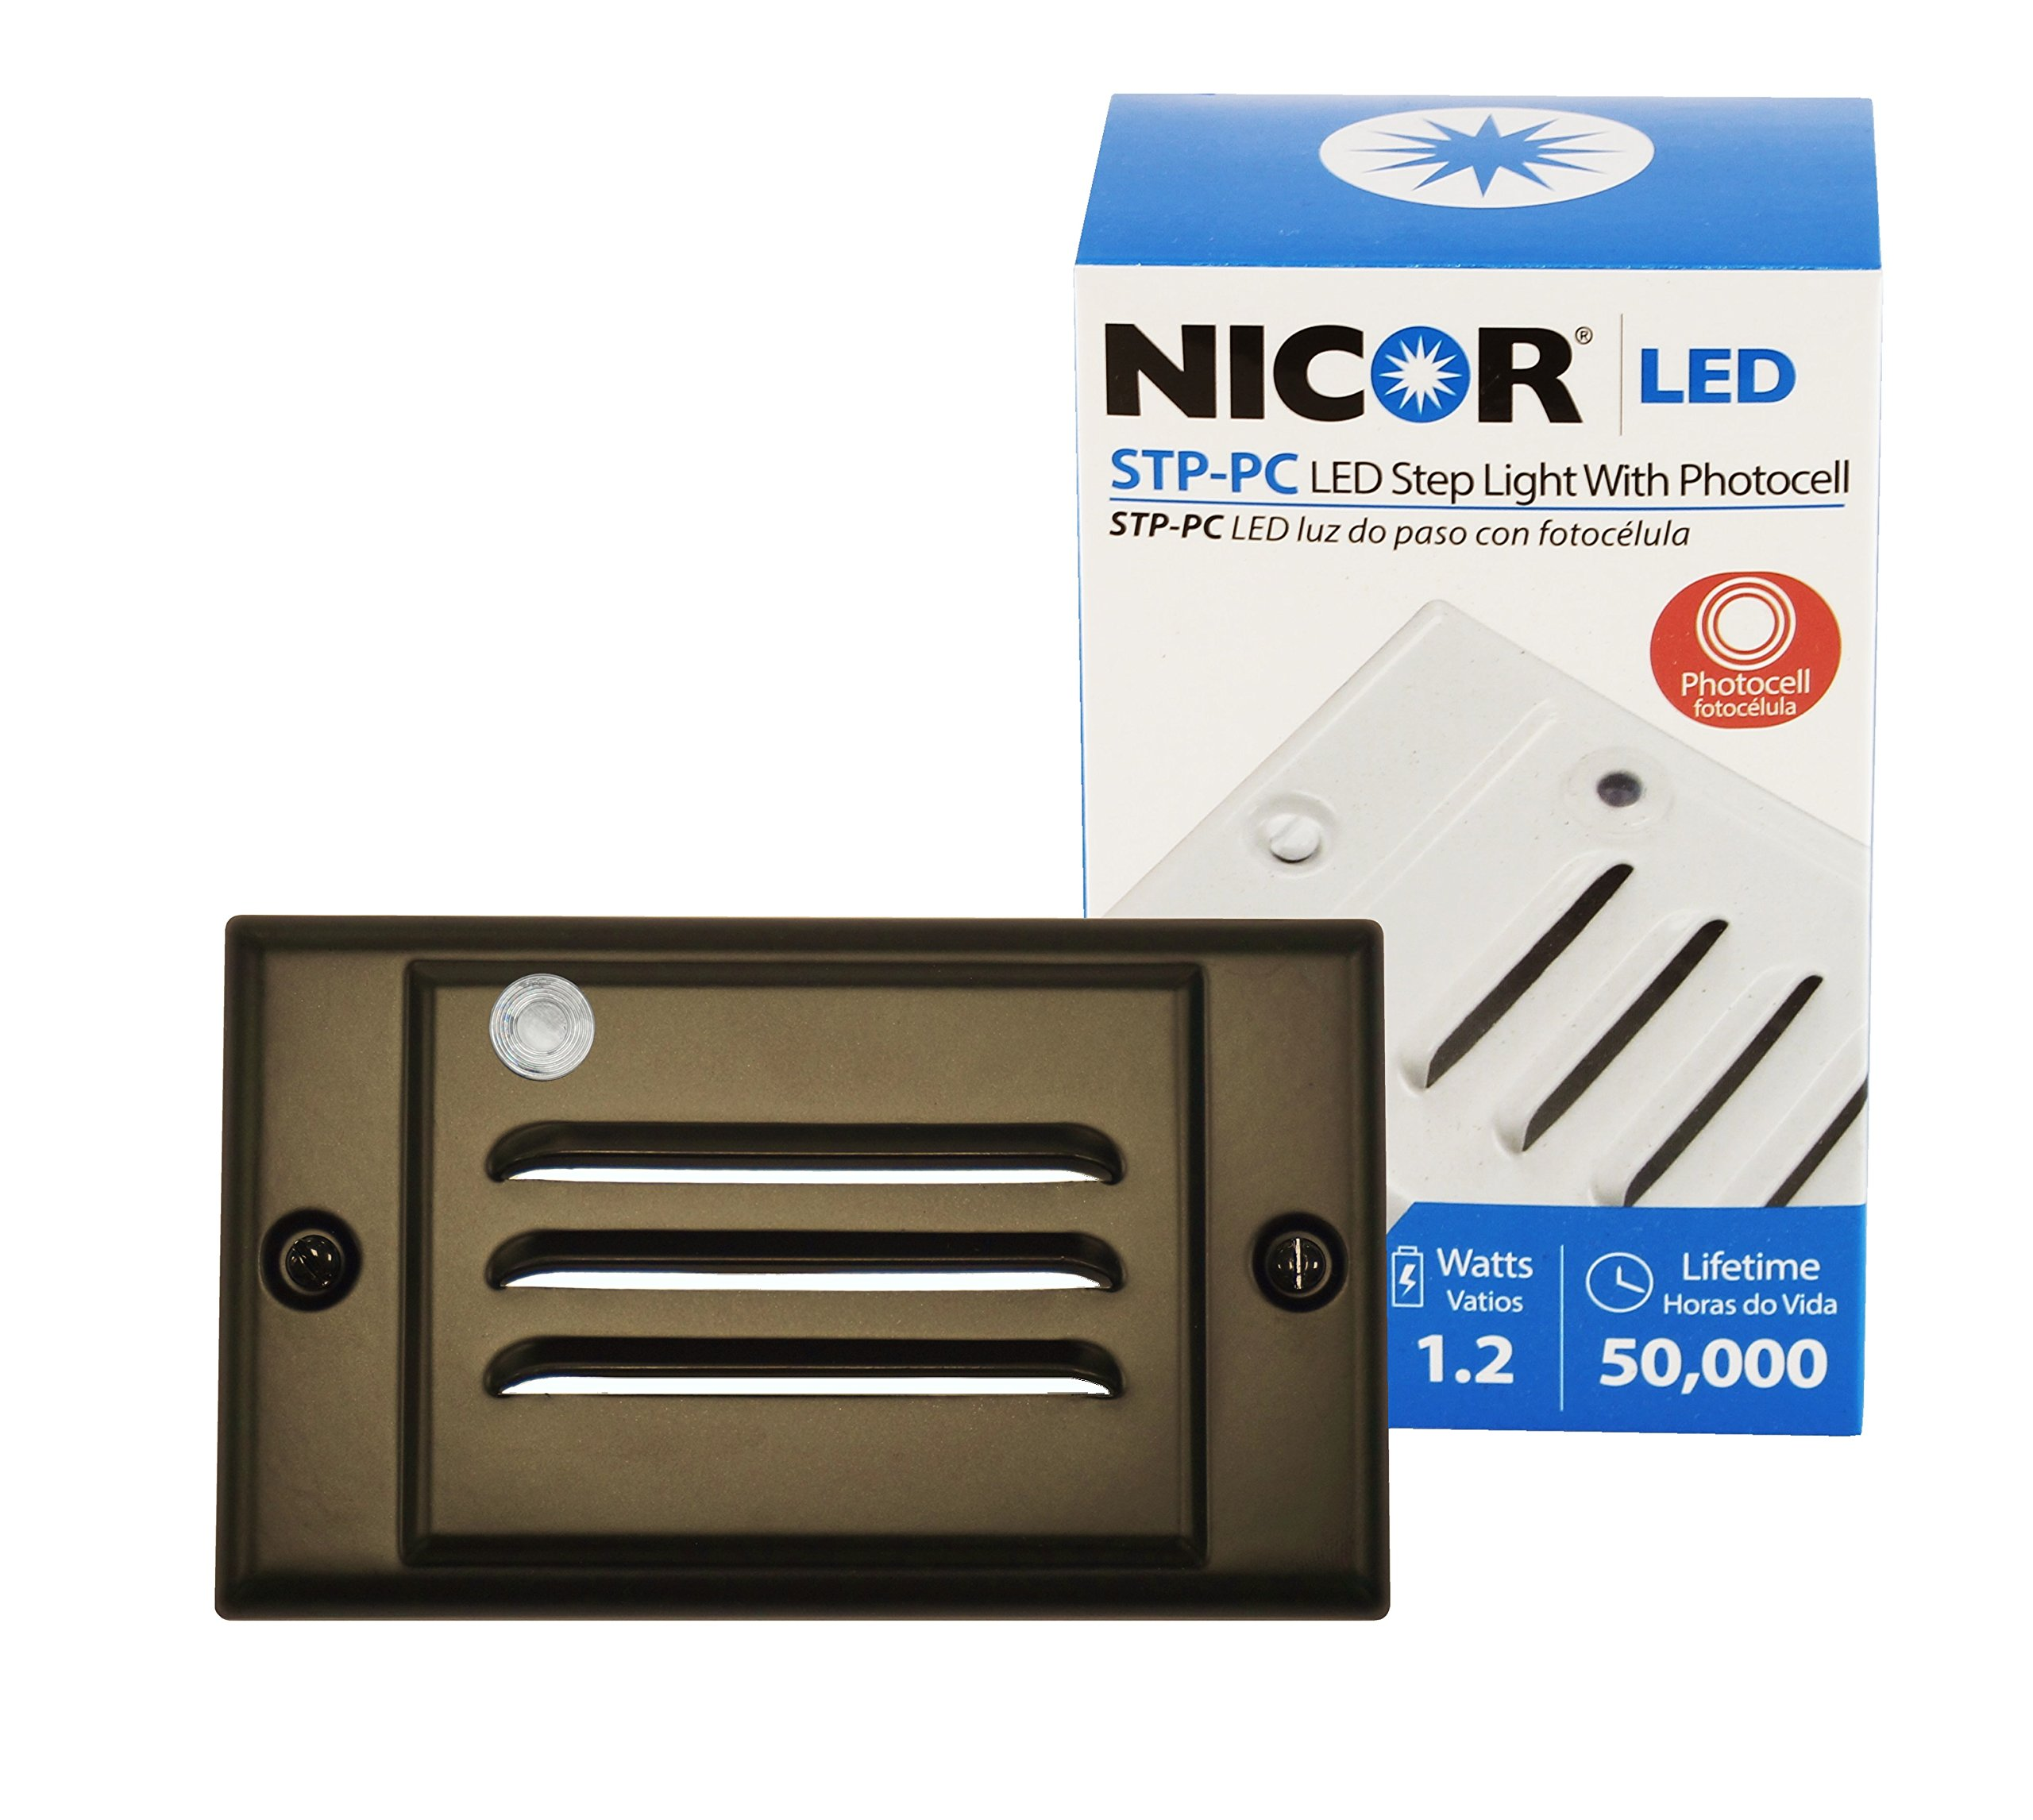 NICOR Lighting LED Step Light with Photocell Sensor and Horizontal Faceplate, Oil-Rubbed Bronze (STP-10-120-HOB-PC)